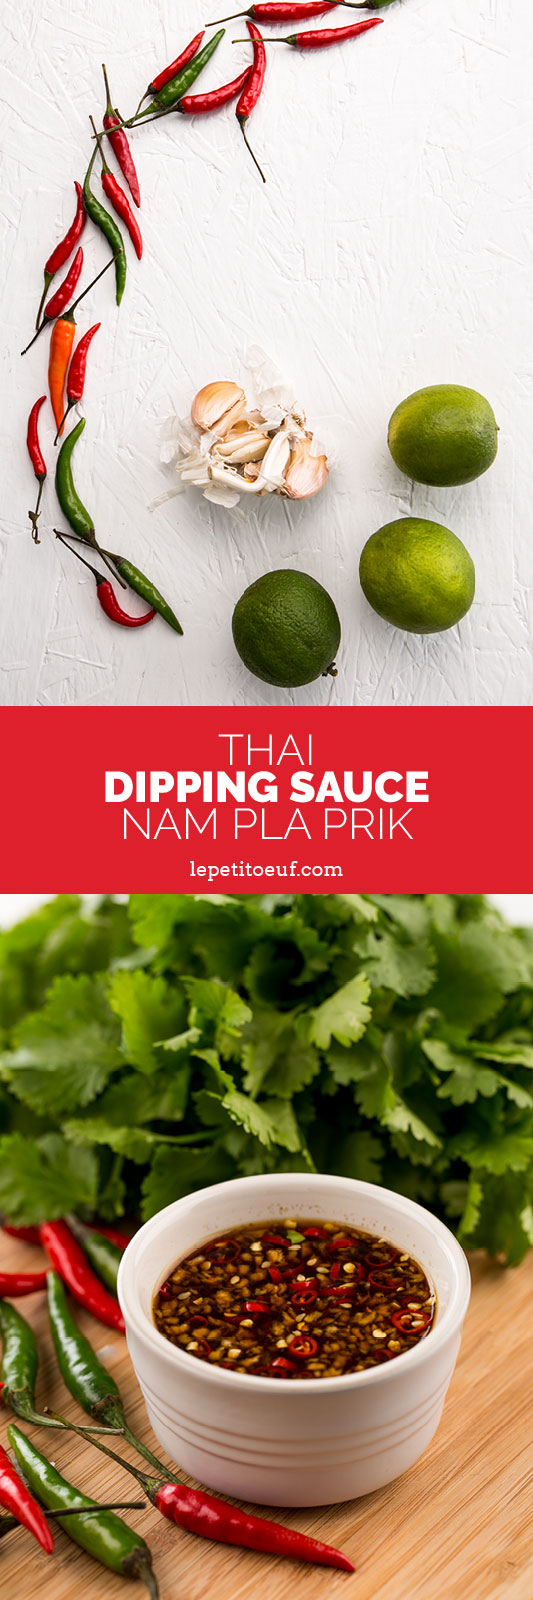 This sweet and spicy thai dipping sauce is the perfect addition to salads, meat or fish, or as a dip to go with spring rolls, summer rolls or anything else that needs an extra kick. Made with just five ingredients it's got a powerful chilli kick with potent flavours of fish sauce, lime juice, garlic and palm sugar. It's the perfect summer sauce, regardless of whether the sun is shining or not! Find the full recipe at brainfoodstudio.com